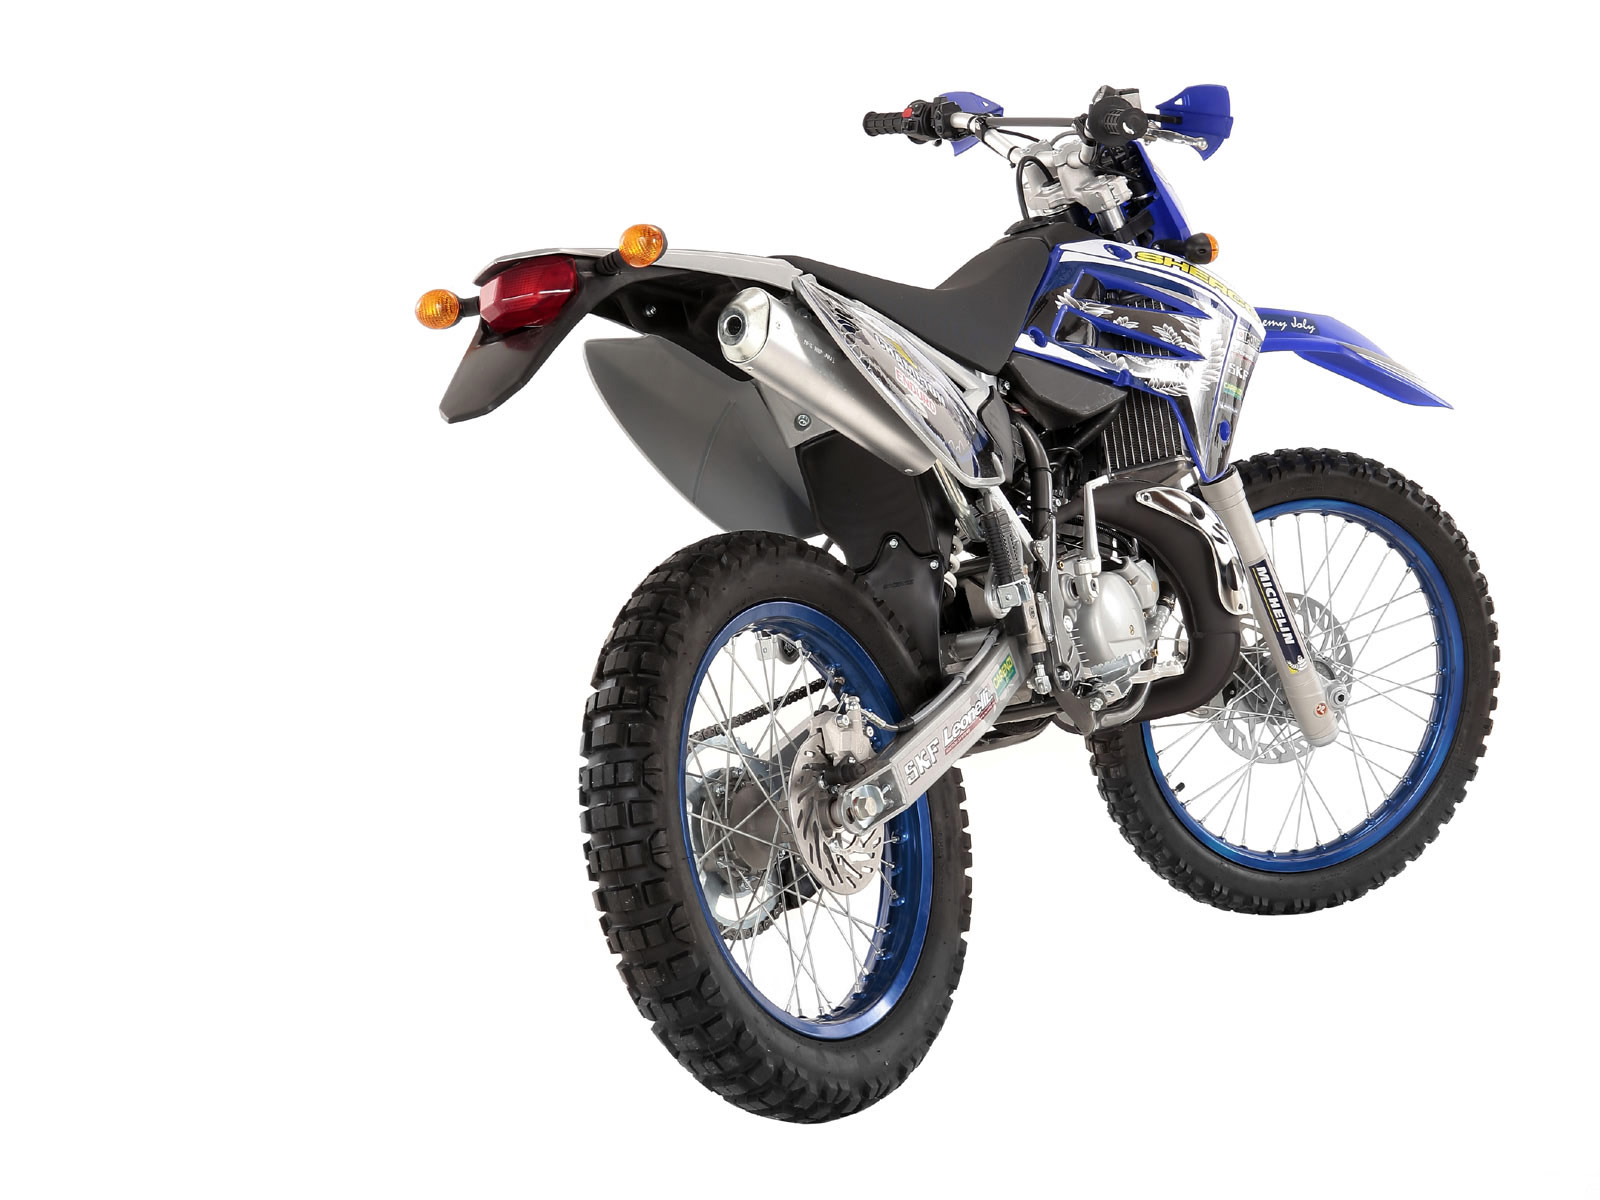 Sherco 5.1i 4T Supermotard 2007 images #124377